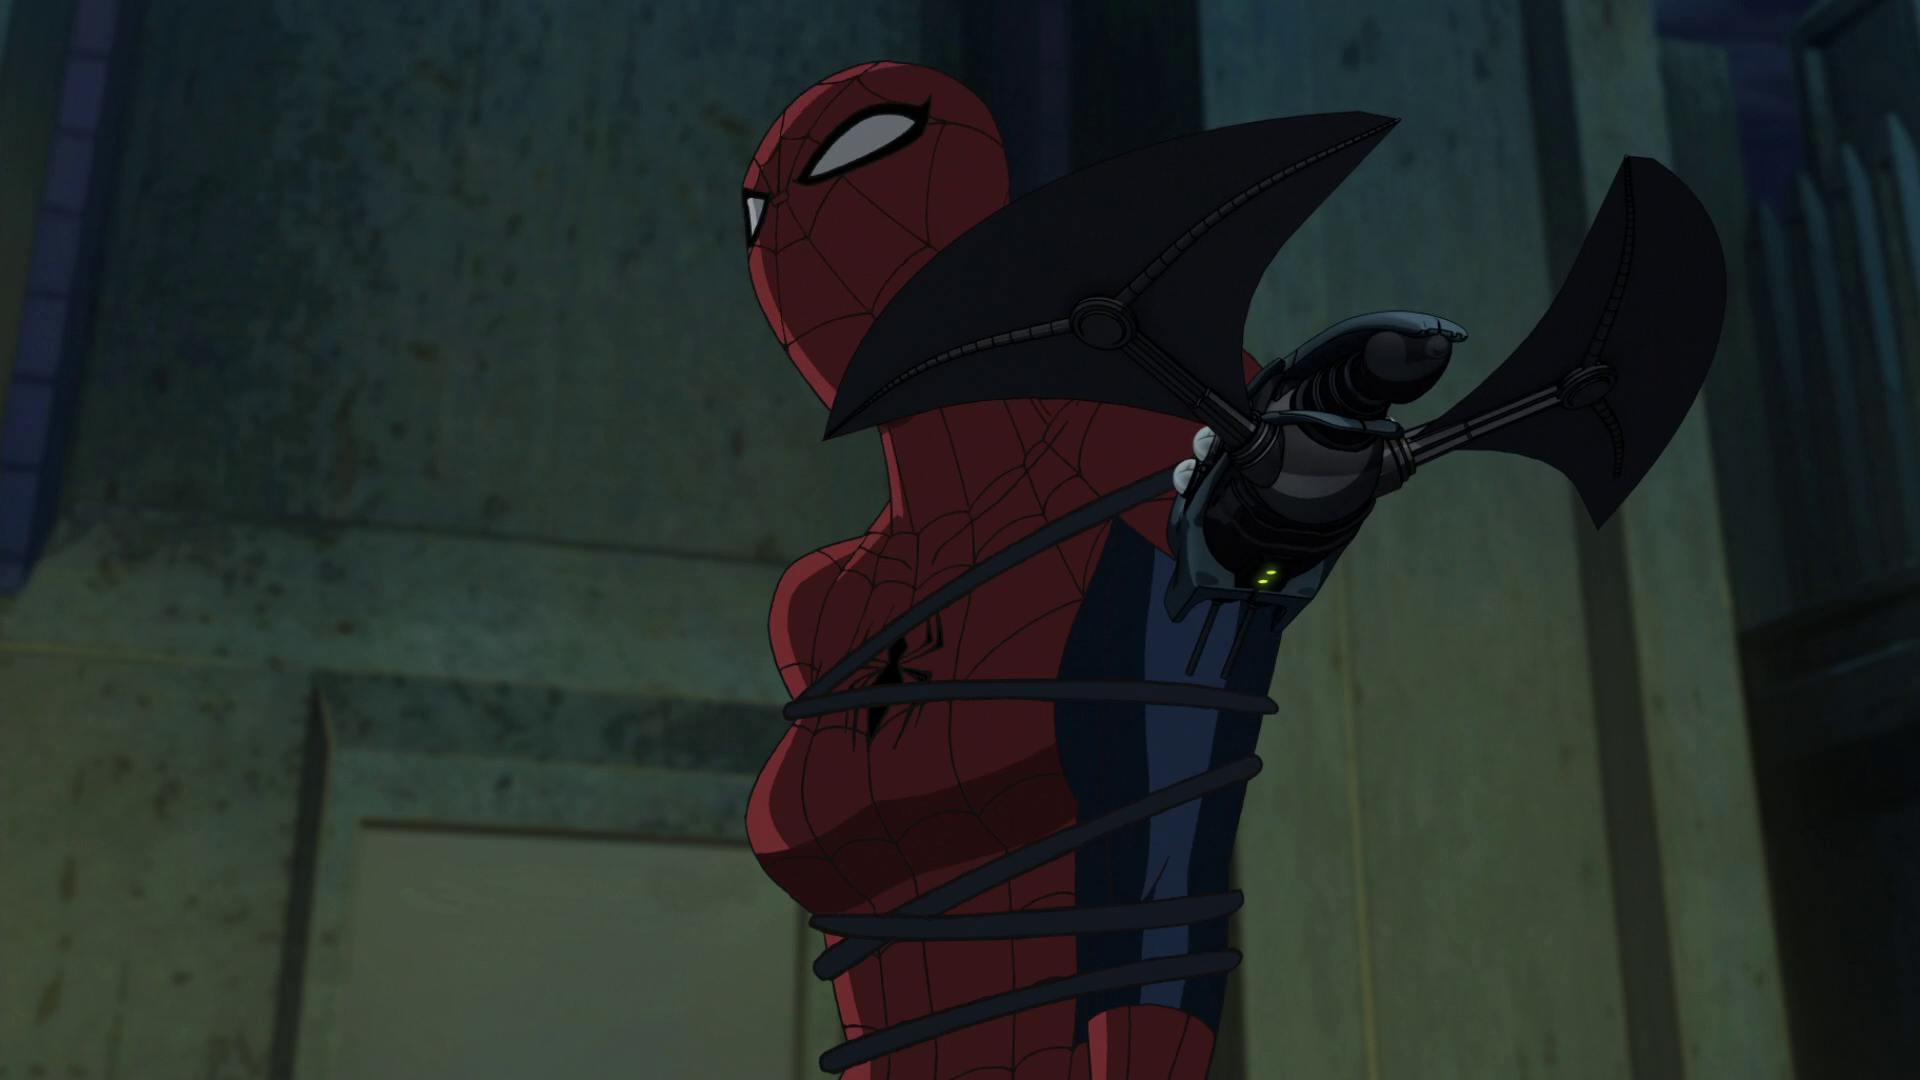 image spidergirl caught usmwwpng ultimate spiderman